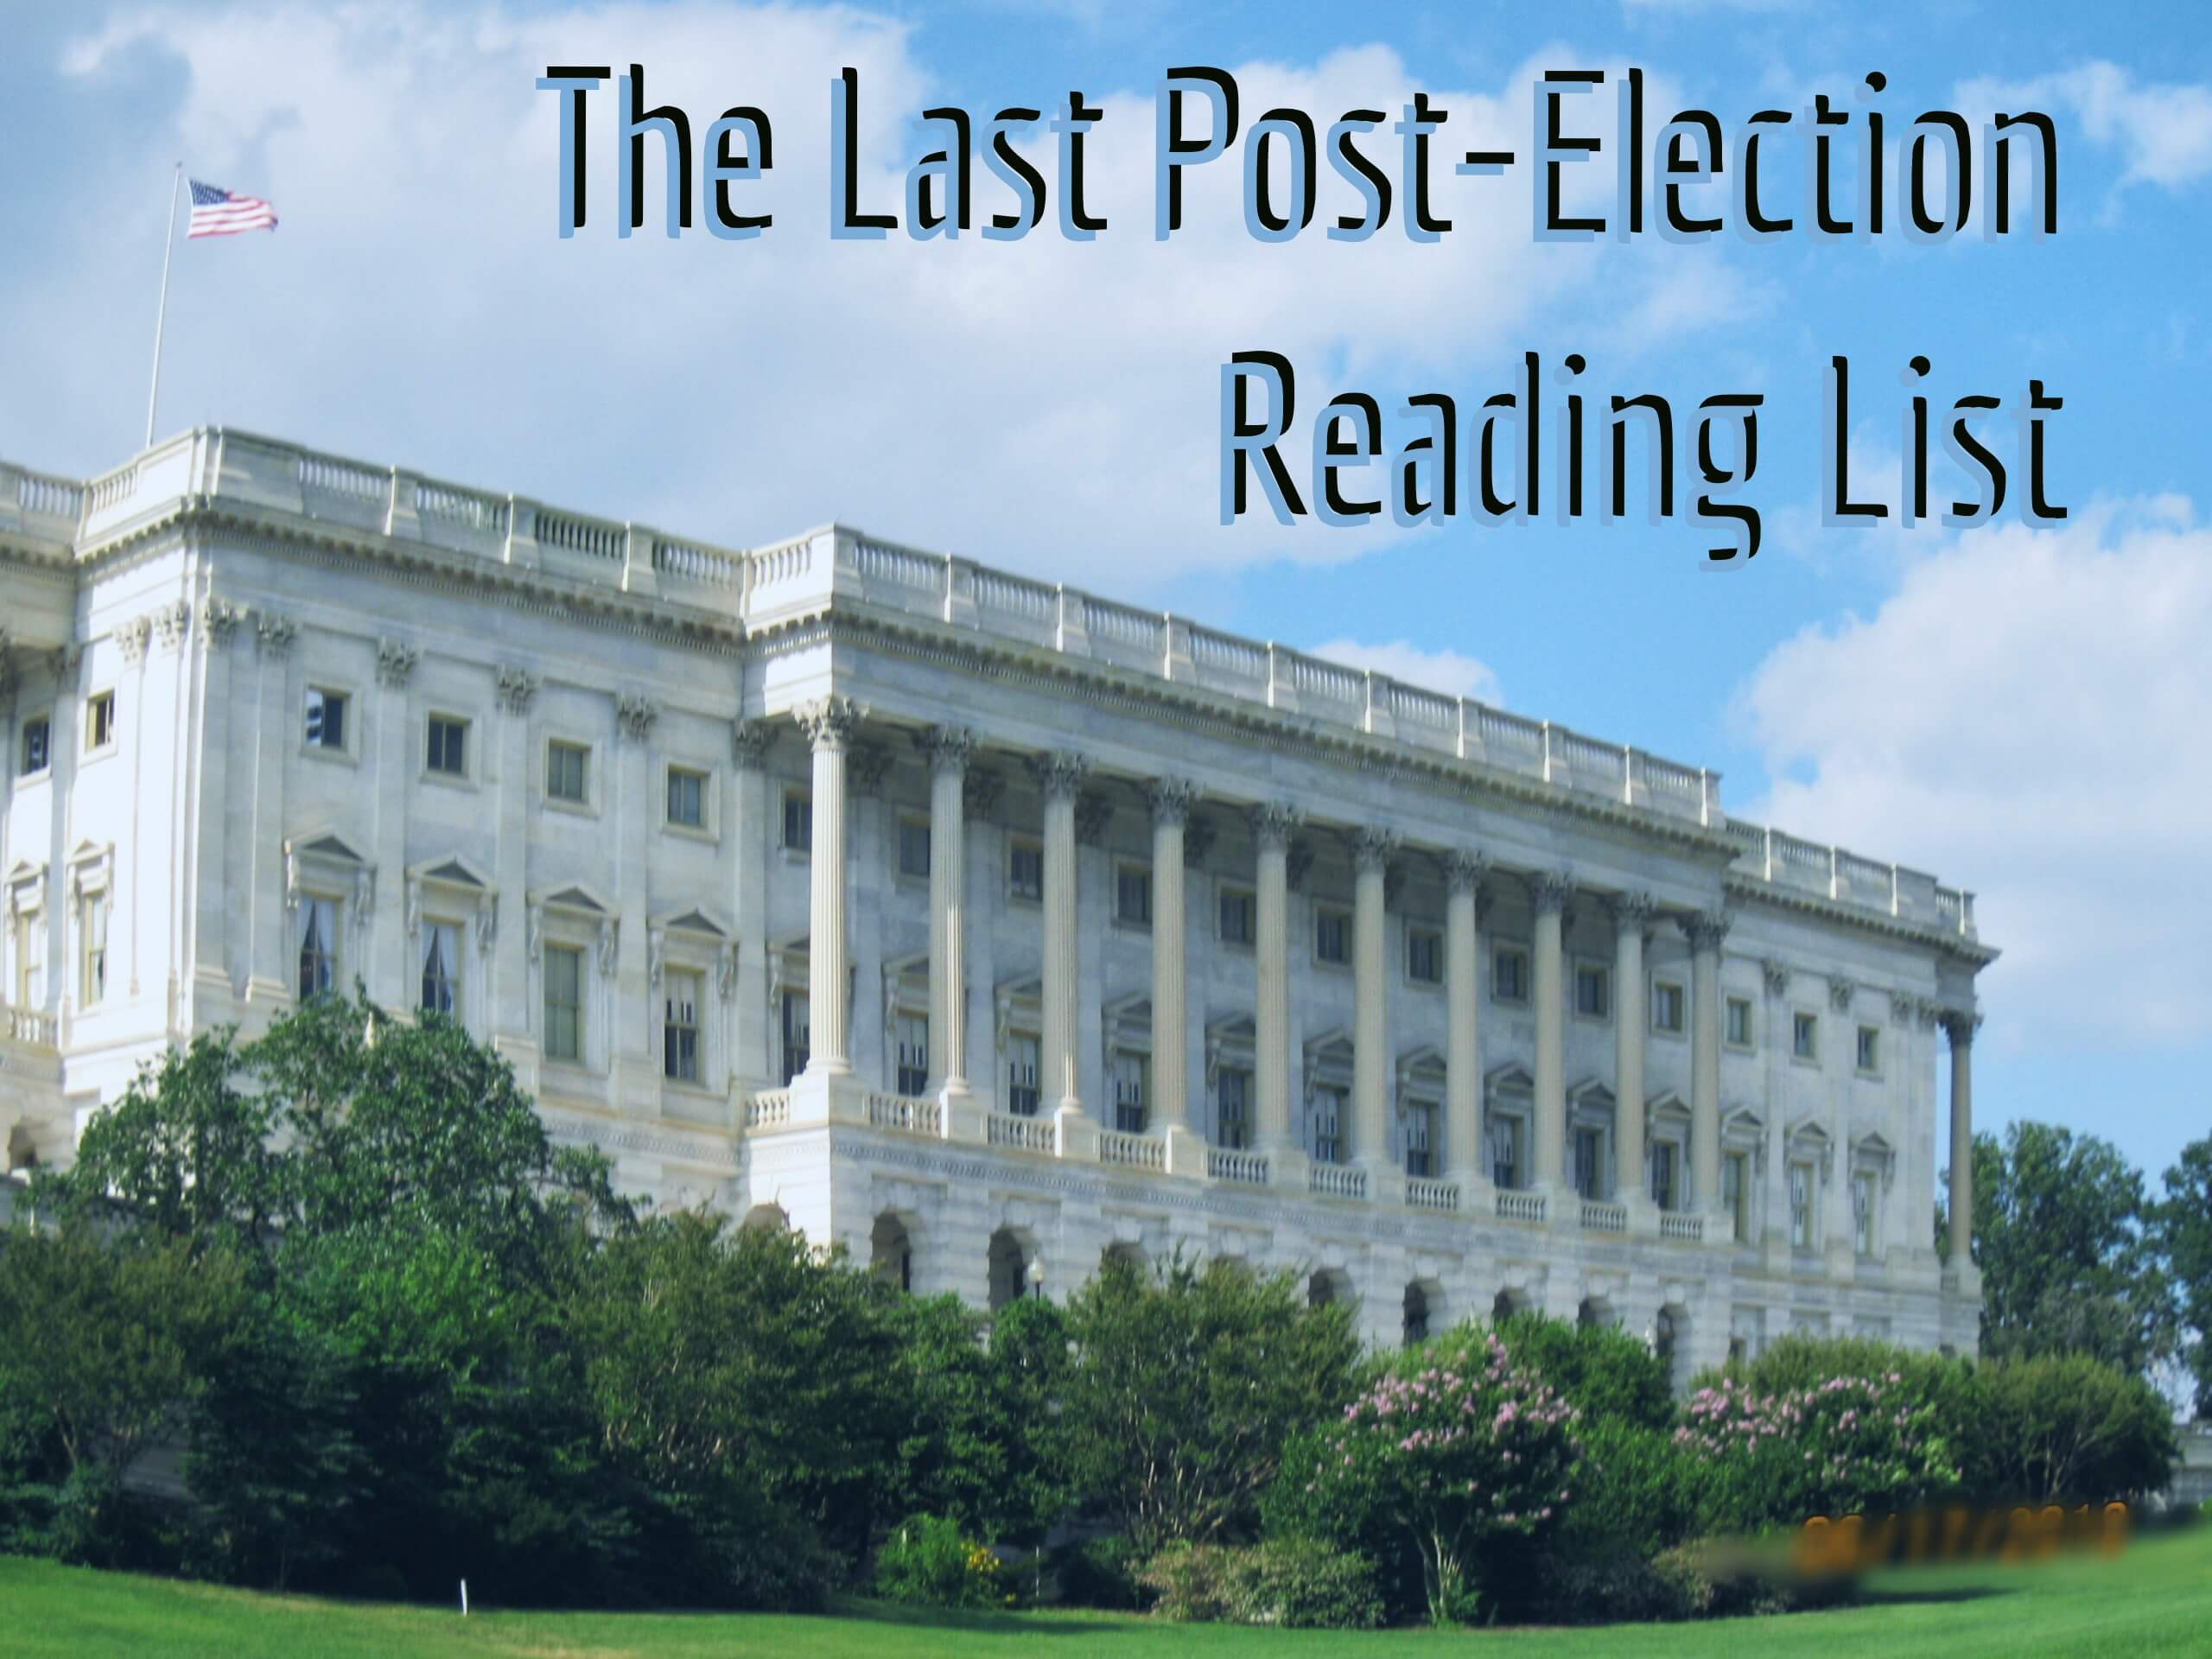 the last post-election reading list